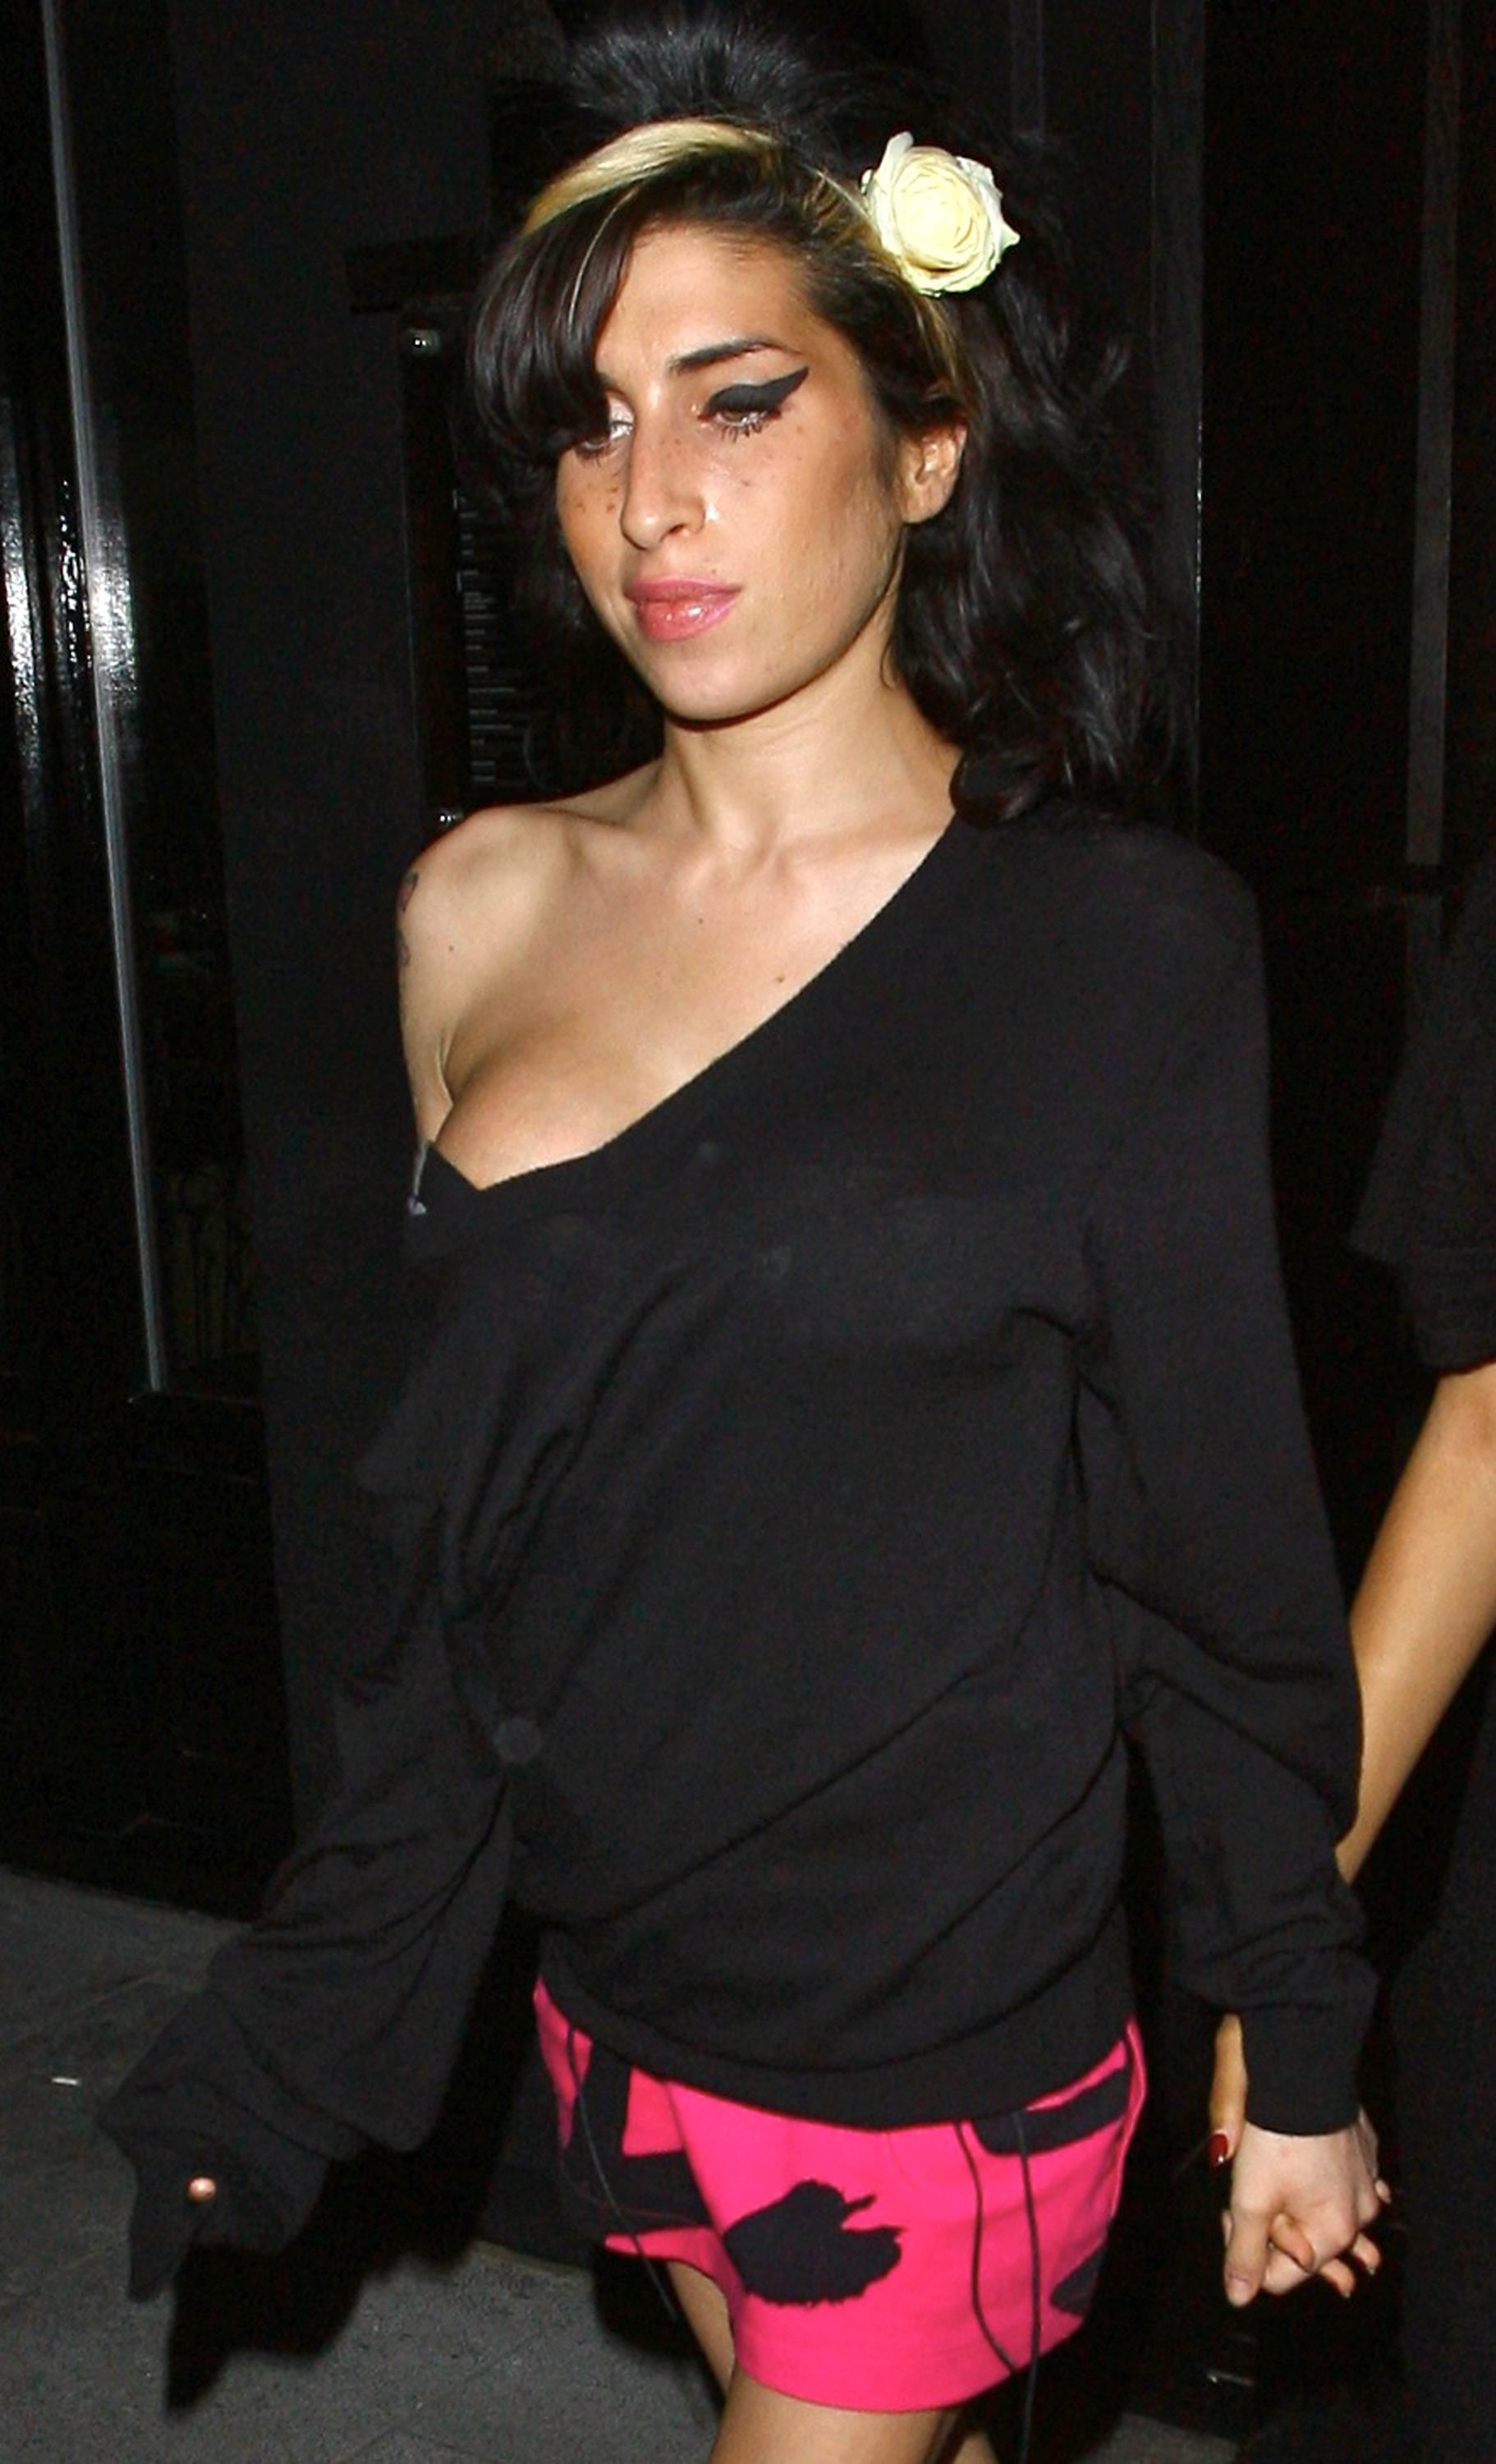 Amy winehouse boob photos